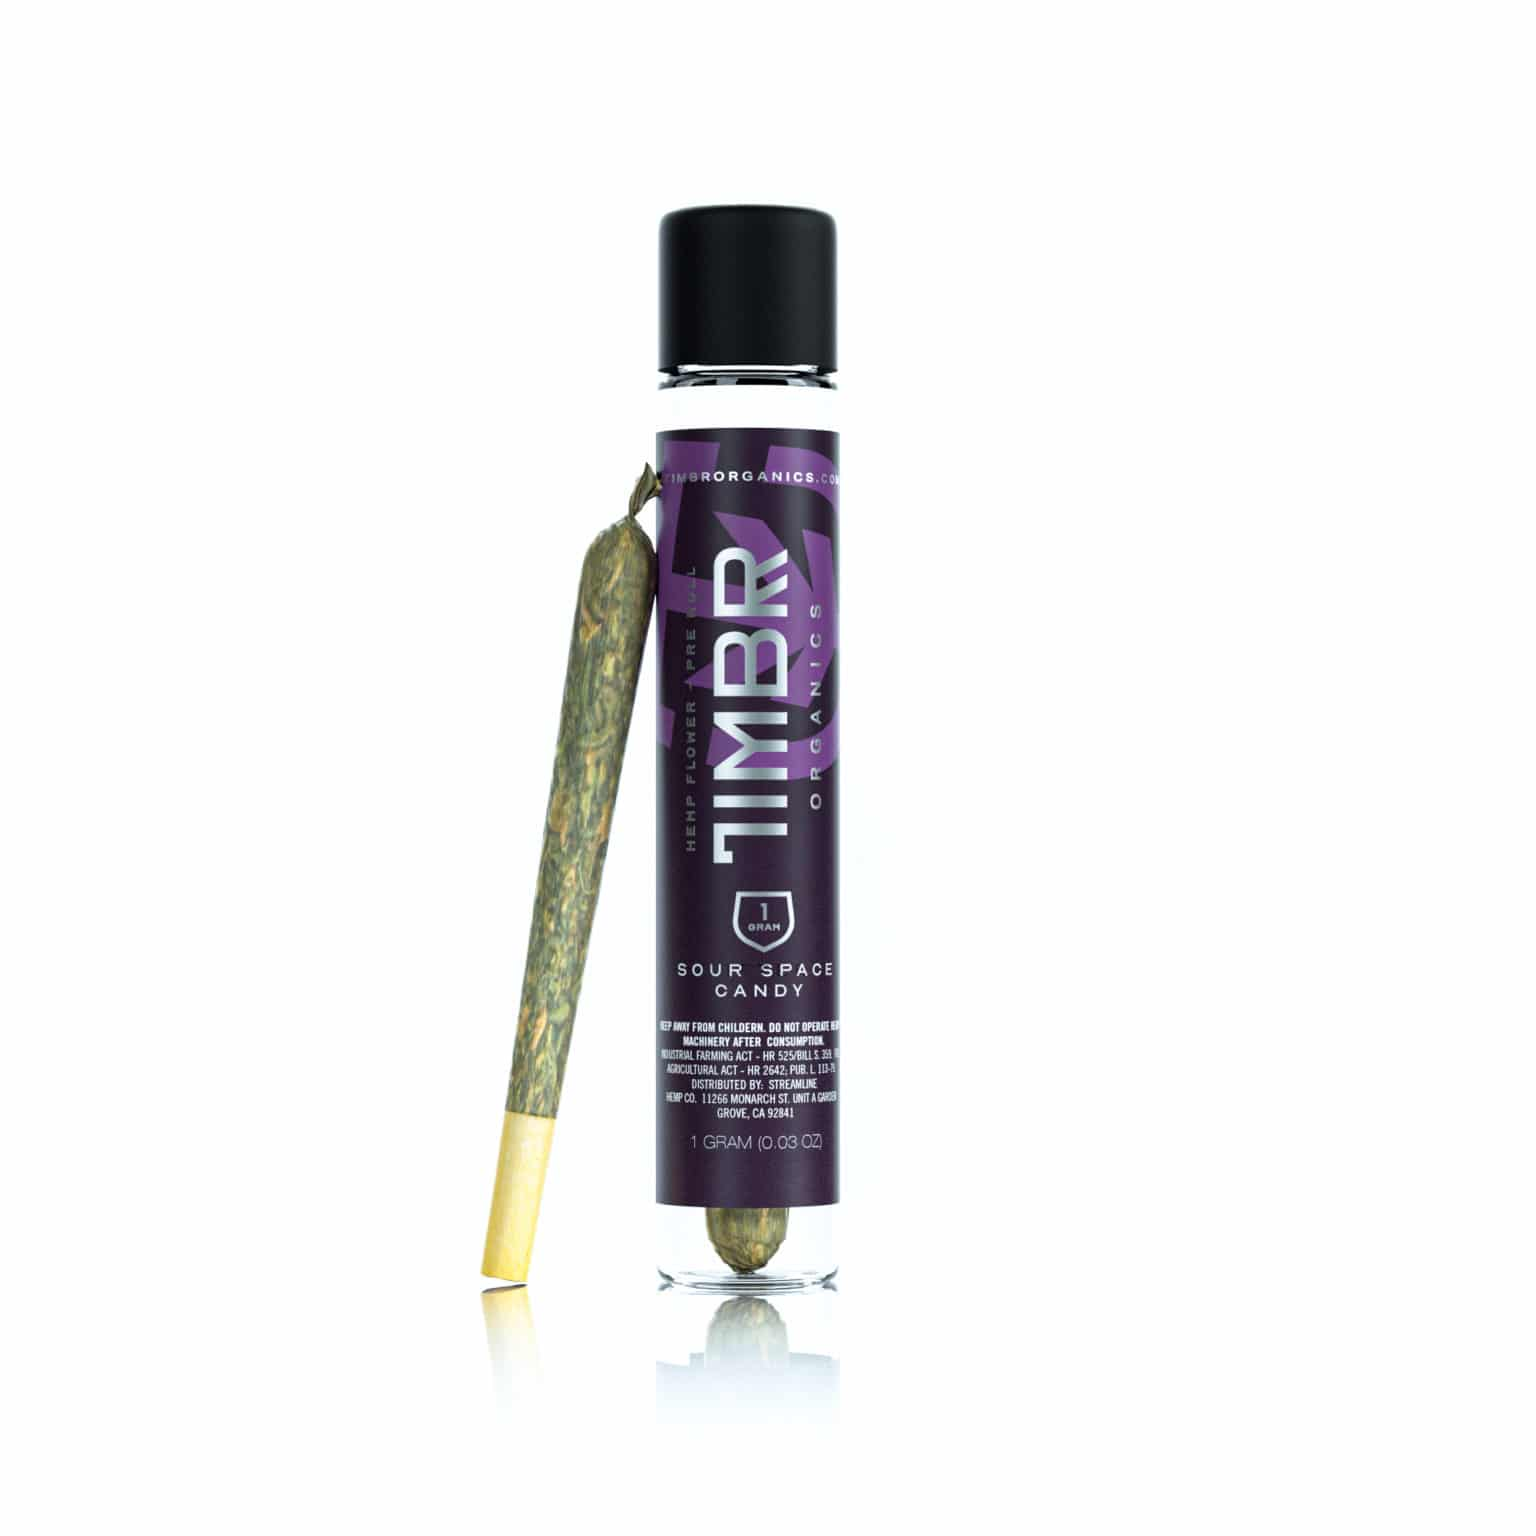 TIMBR Sour Space Candy CBD Pre Roll